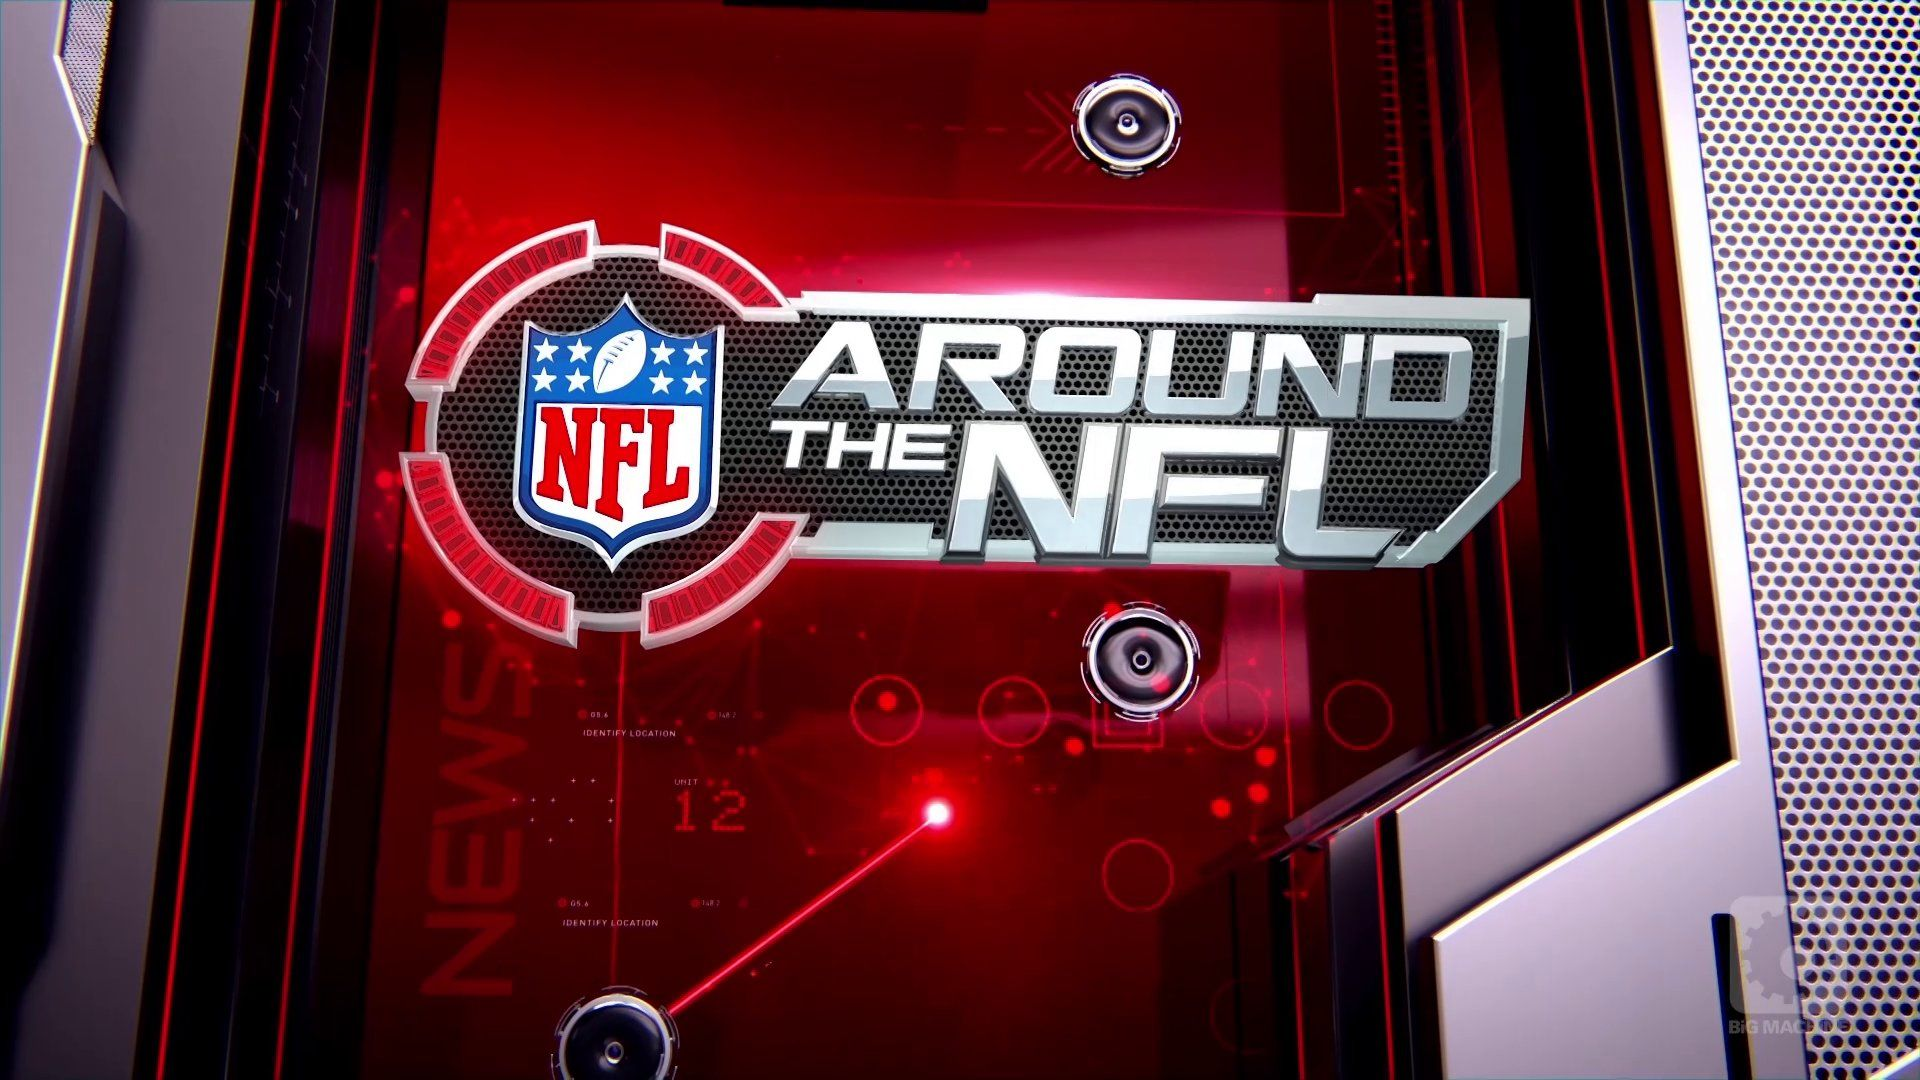 AROUND THE NFL Show Graphics Package Nfl, Nfl logo